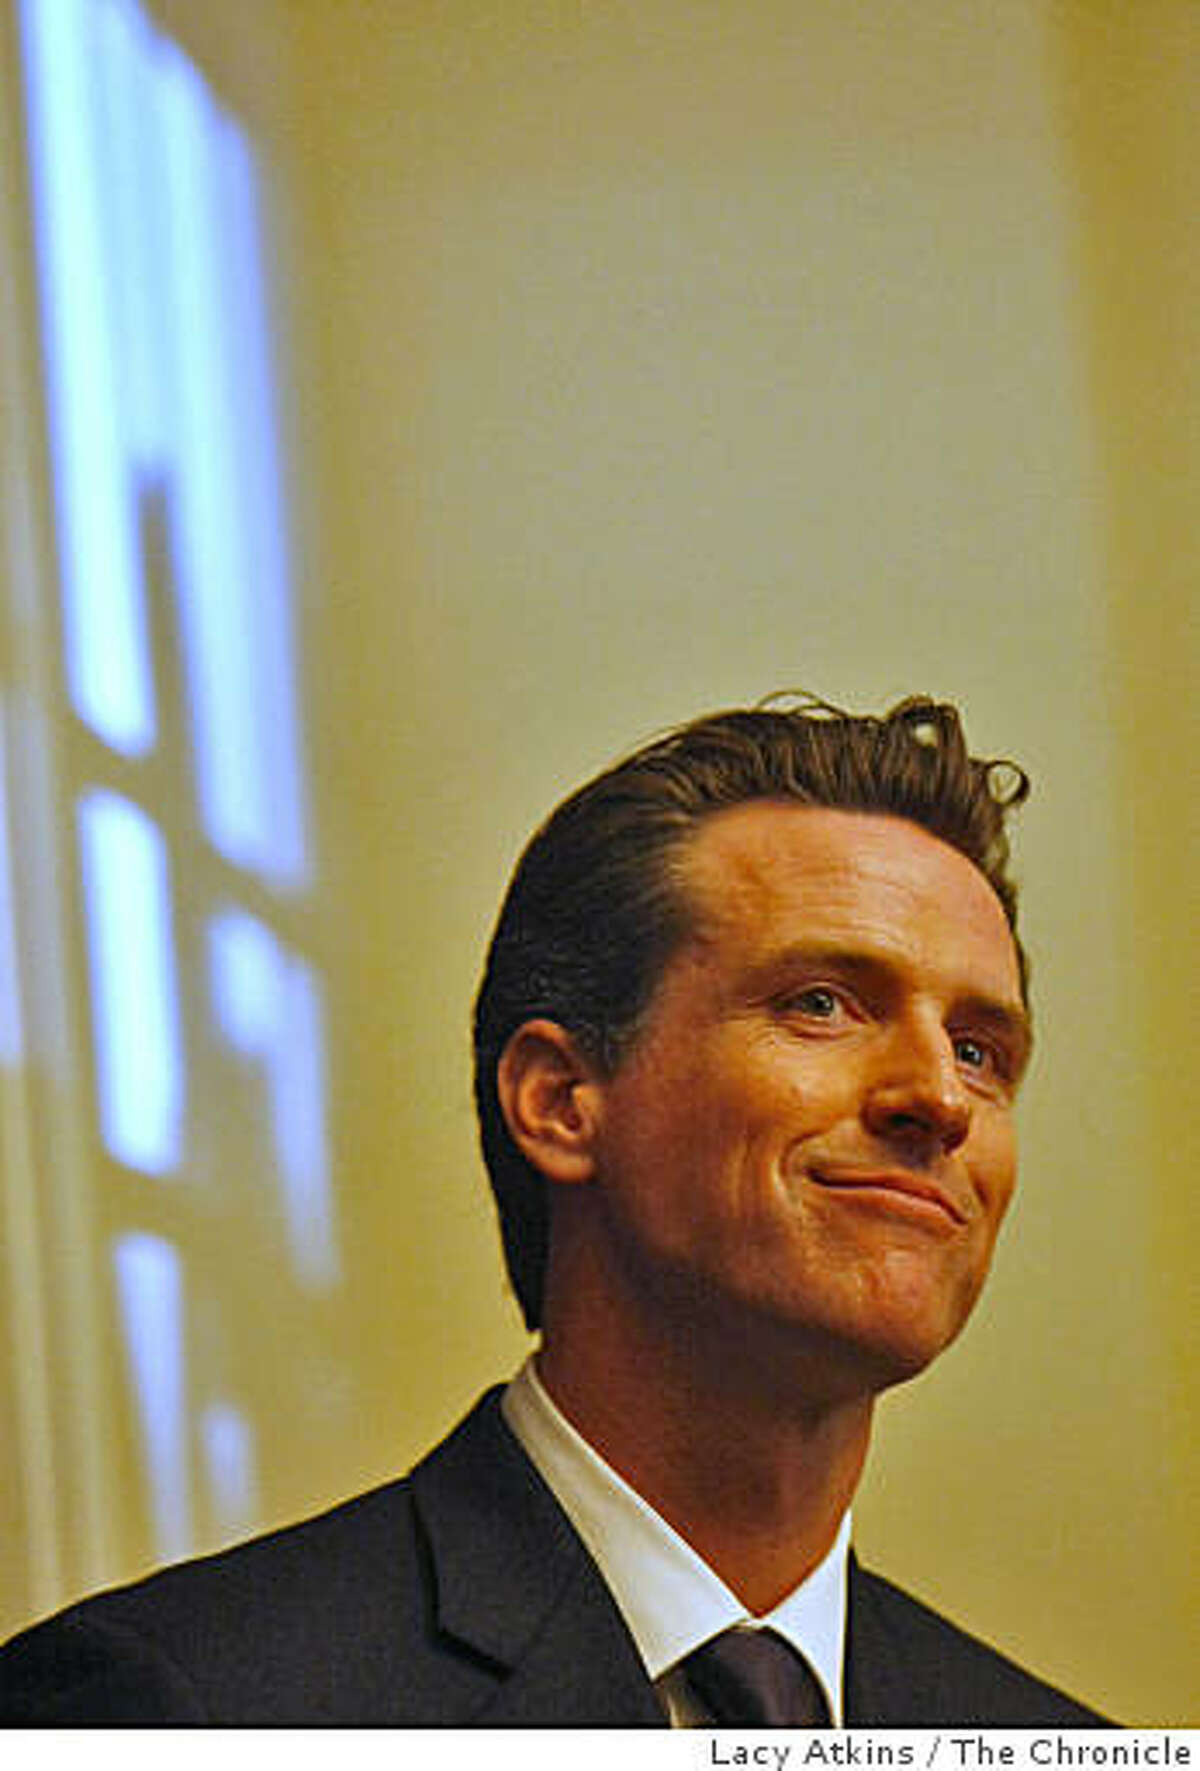 Mayor Gavin Newsom speaks as one of the guests for up and coming young political figures at the Time magazine breakfast as part of the Democratic National Convention, Tuesday Aug.26, 2008, in Denver, Colorado.